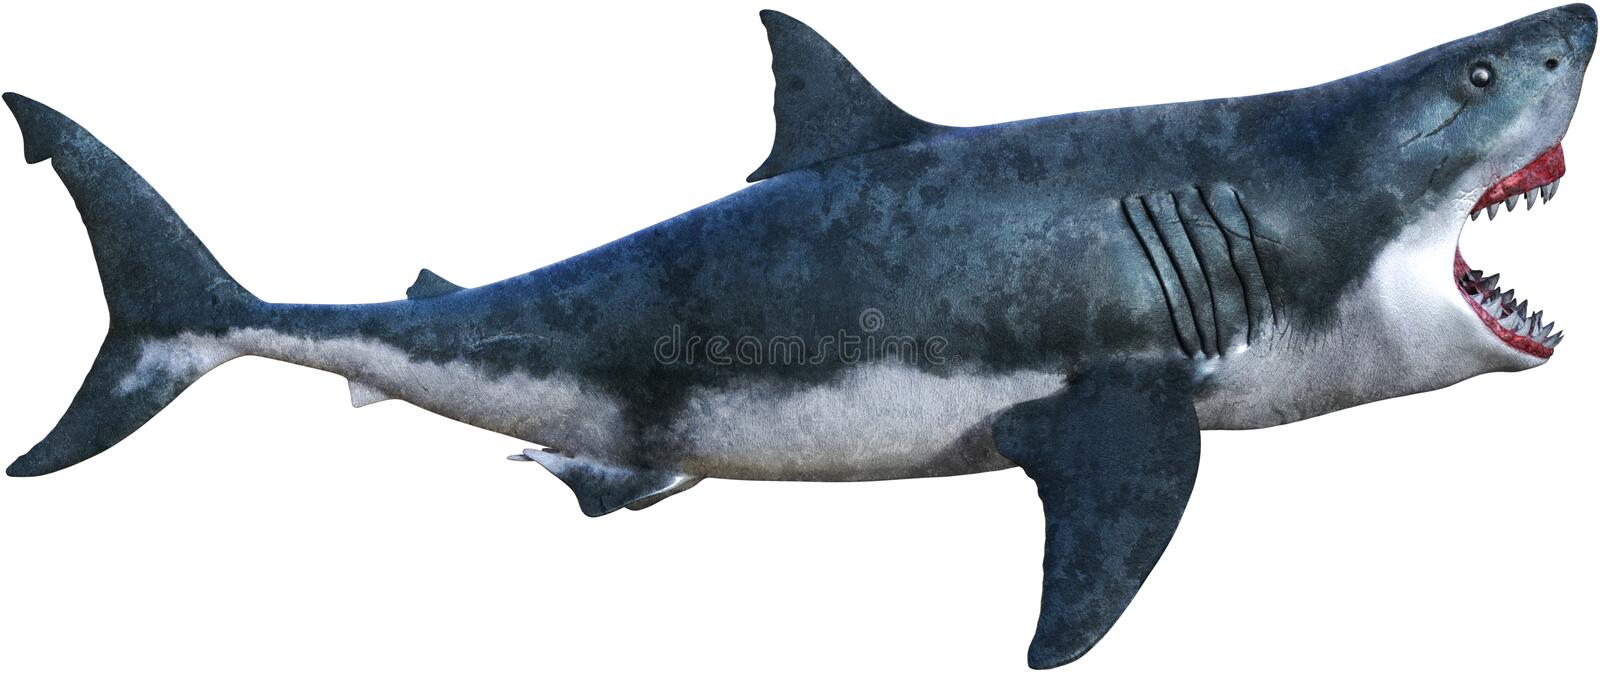 Great White Shark Attack Isolated. Illustration of a great white shark on the attack and ready to bite. Isolated on white, PNG file available royalty free illustration